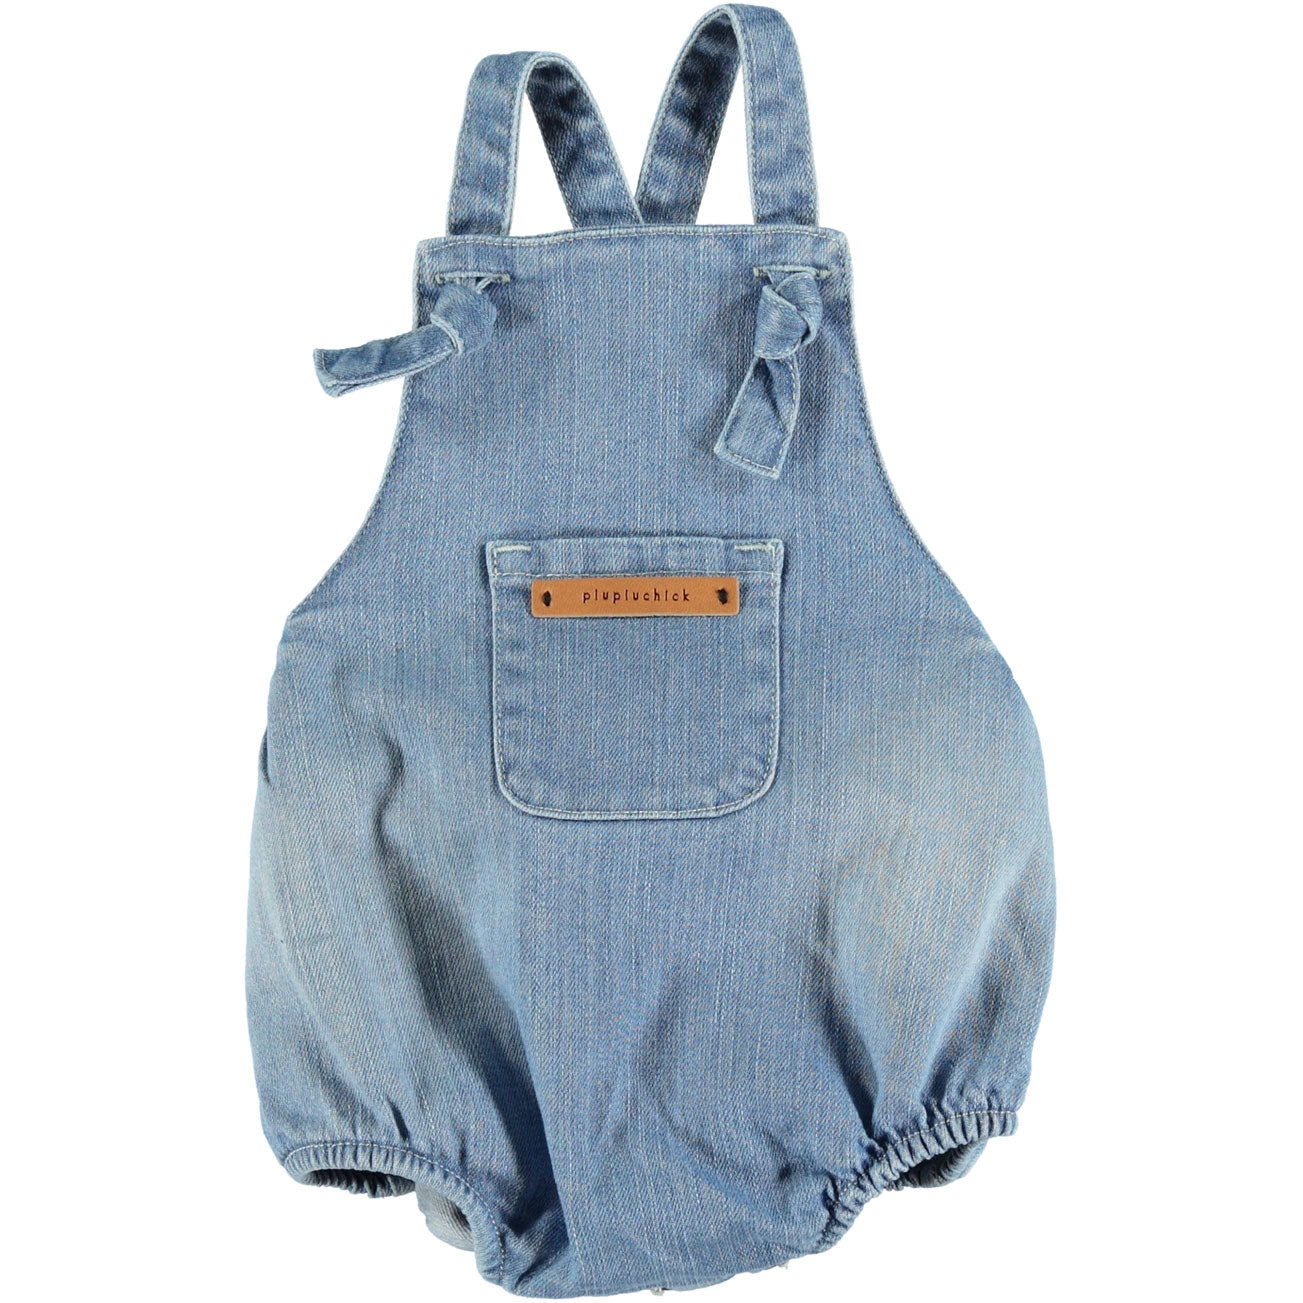 7e13fb11257 Piupiuchick Washed Jeans Romper with Knots